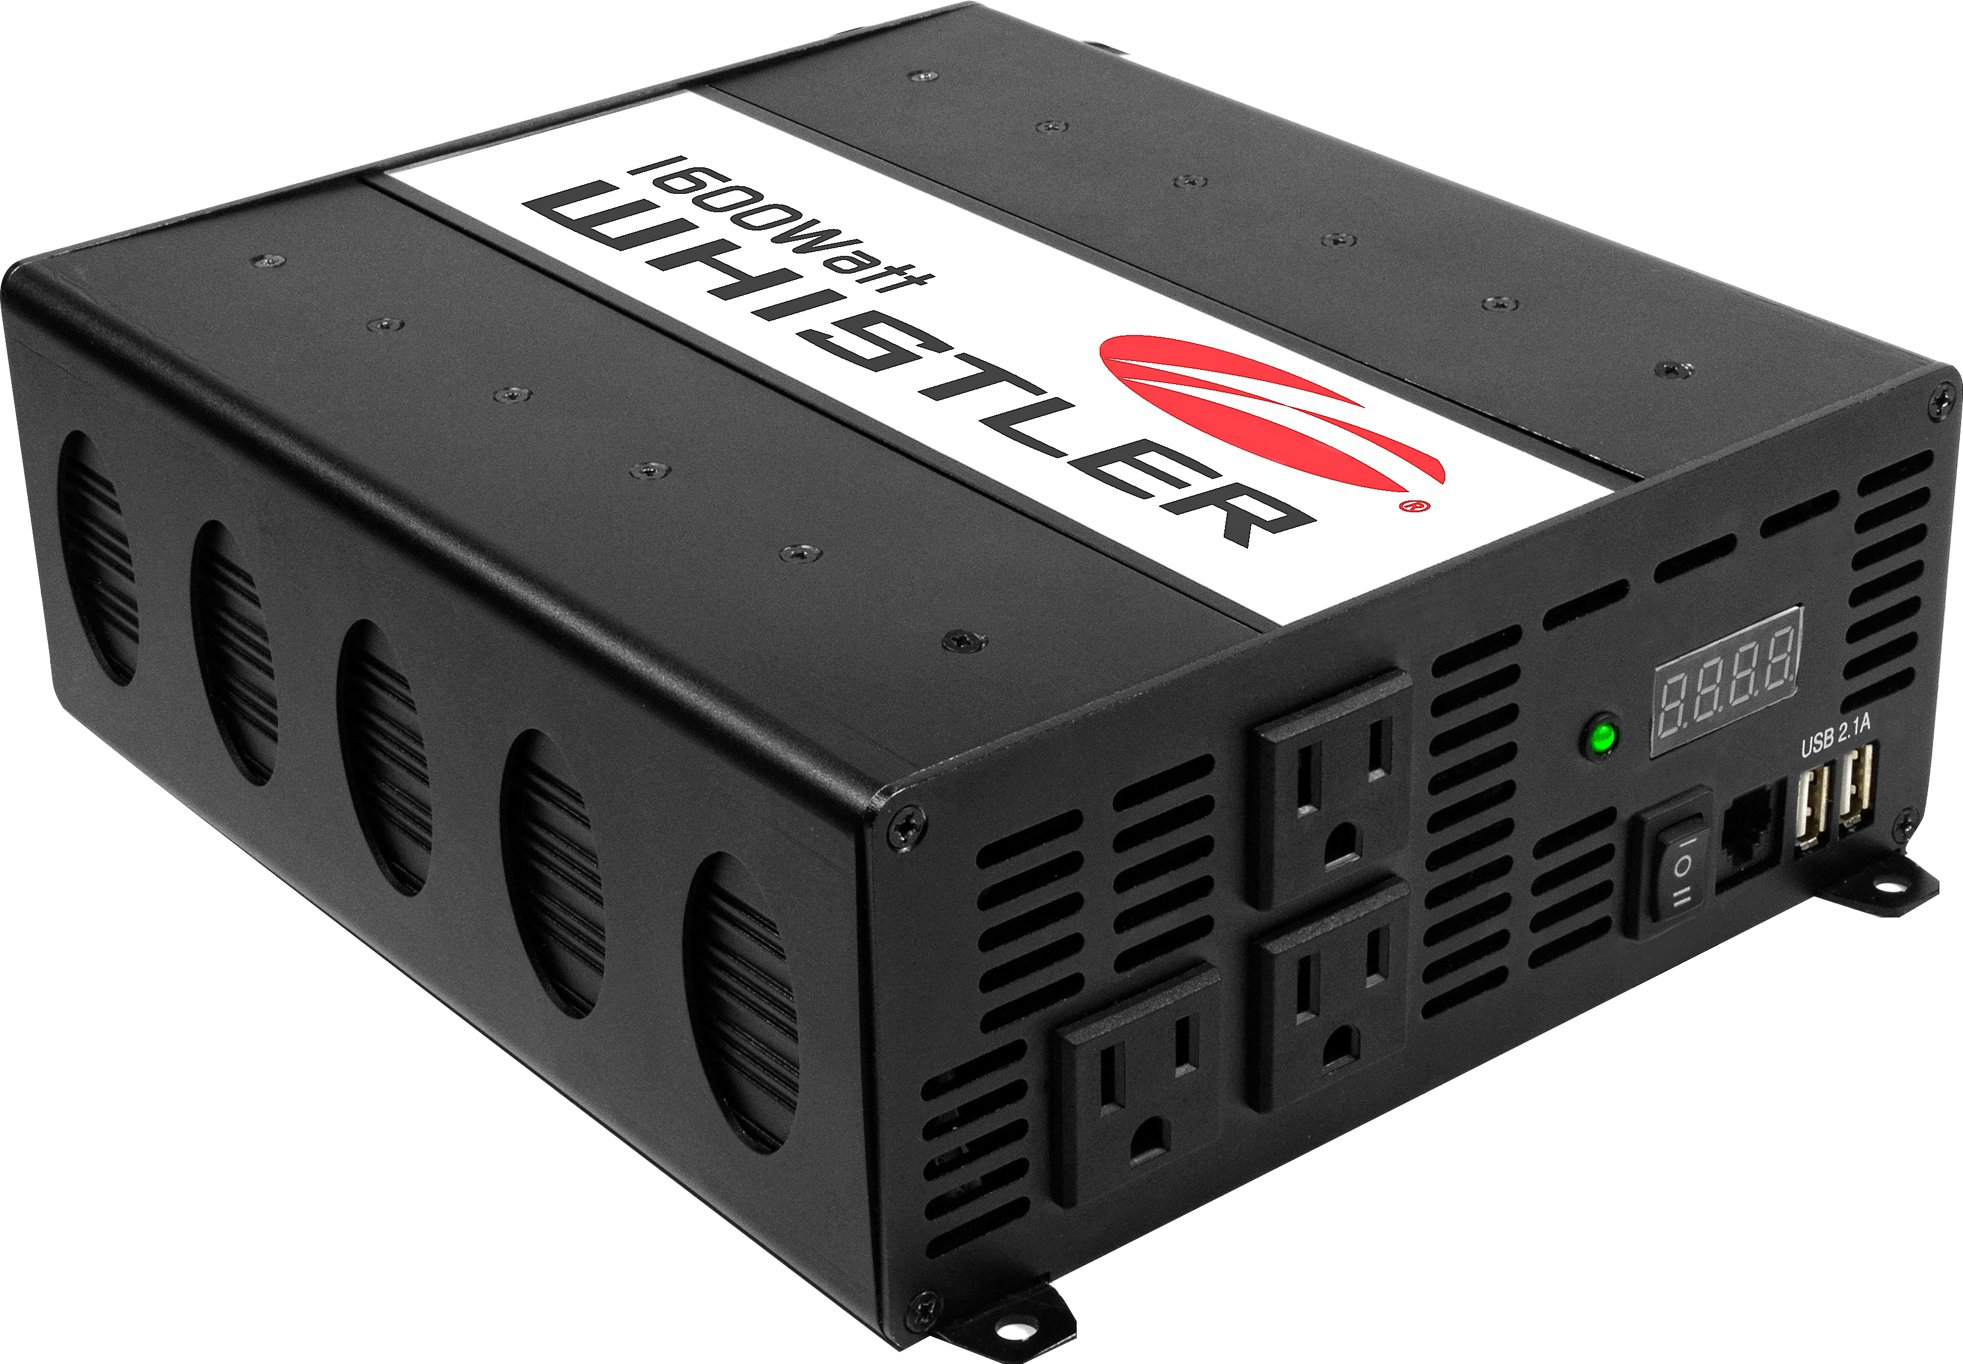 Whistler XP1600i Power Inverter: 1600 Watt Continuous / 3200 Watt Peak Power